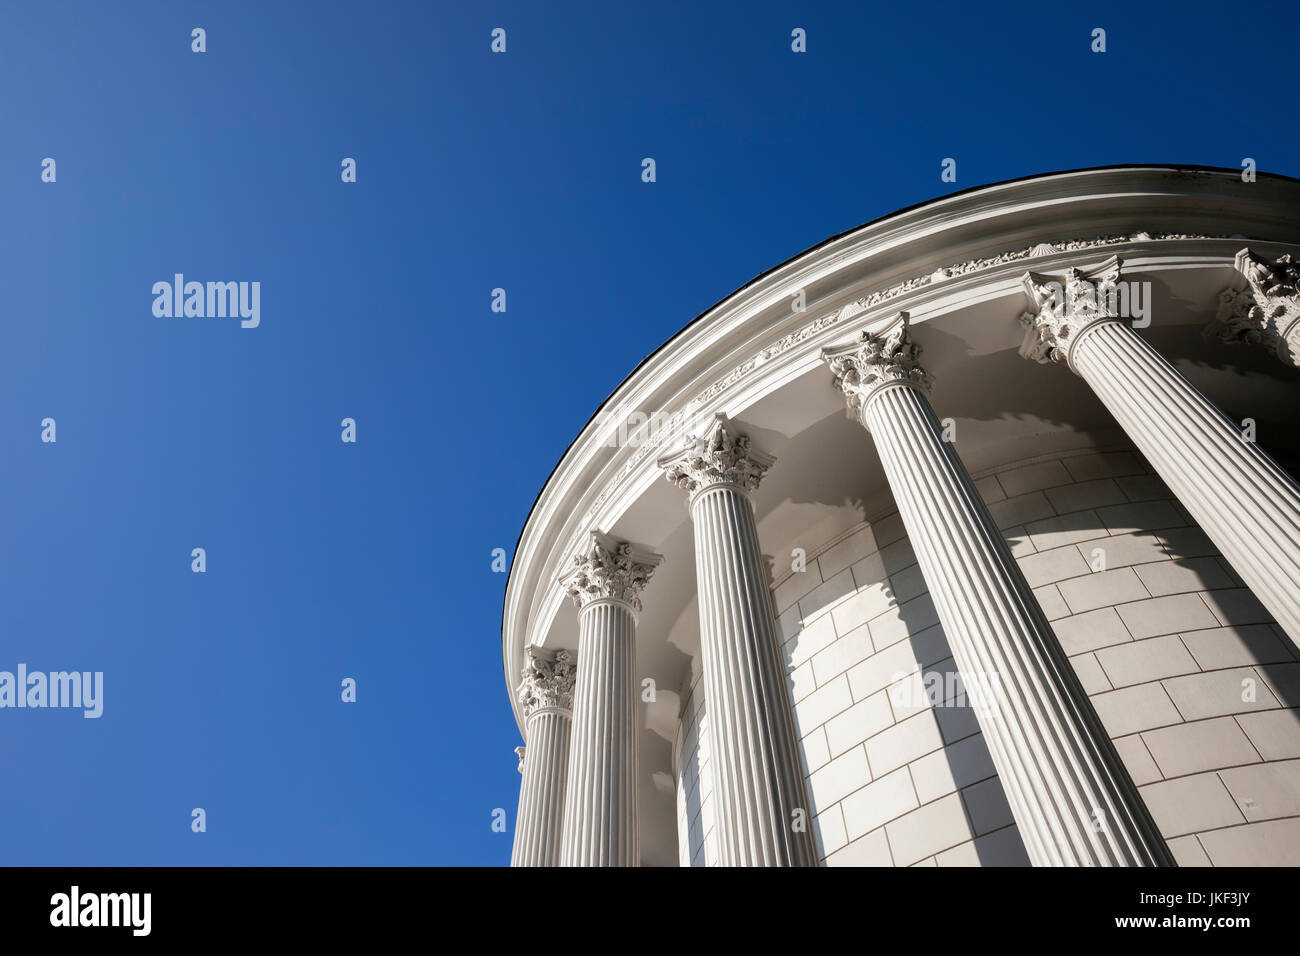 Poland, Warsaw, Saxon Garden, classical style water tower - Stock Image